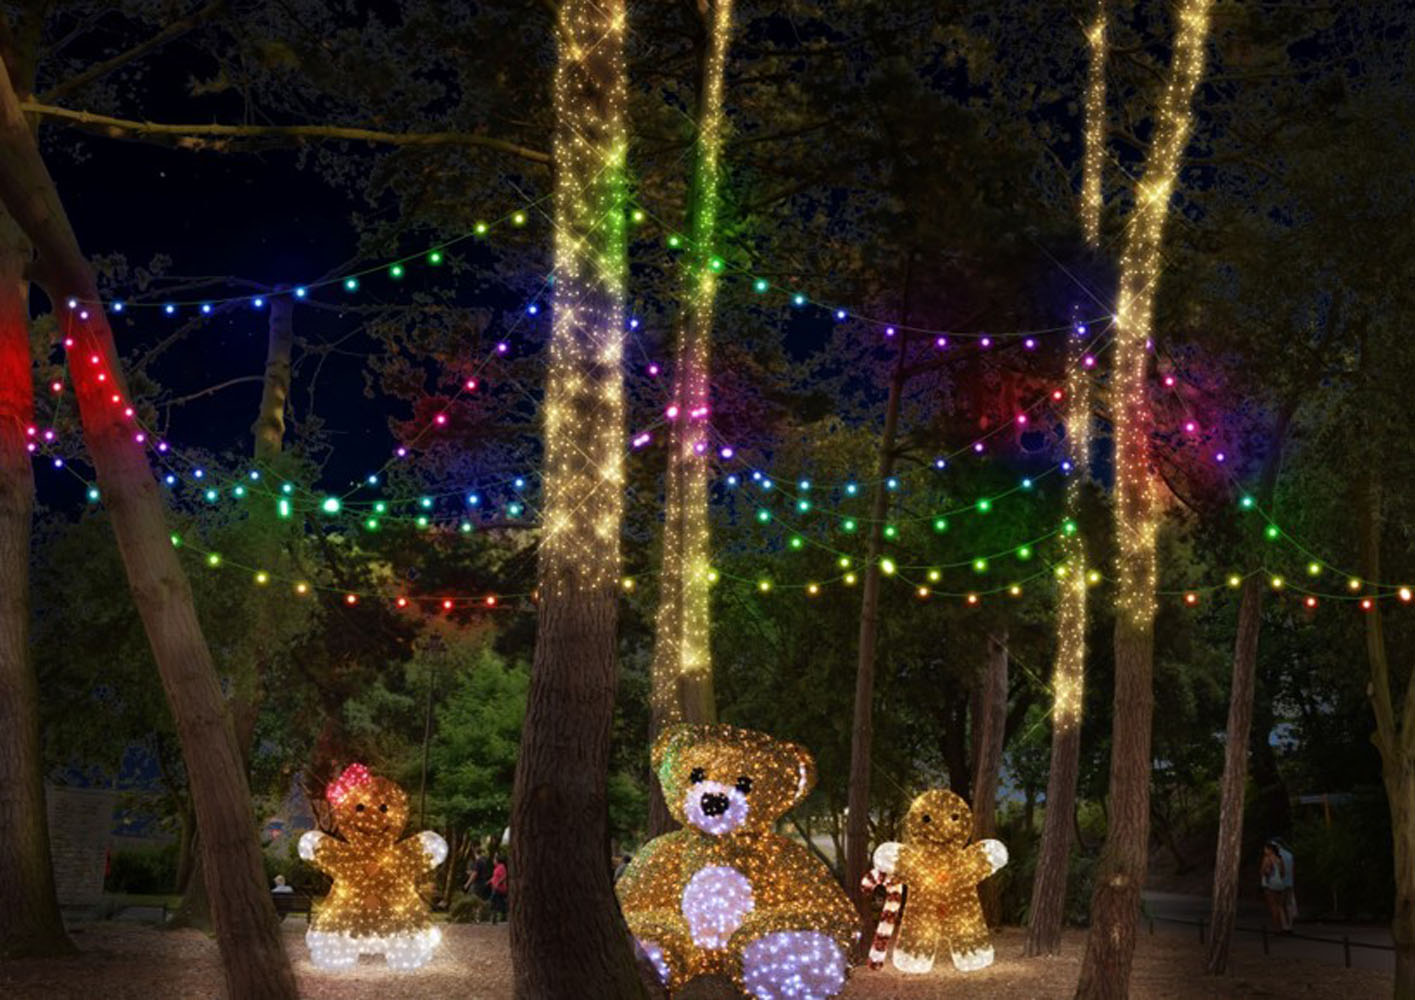 Illuminated teddys in amongst trees as part of Bourenmouth's Christmas Tree Wonderland.